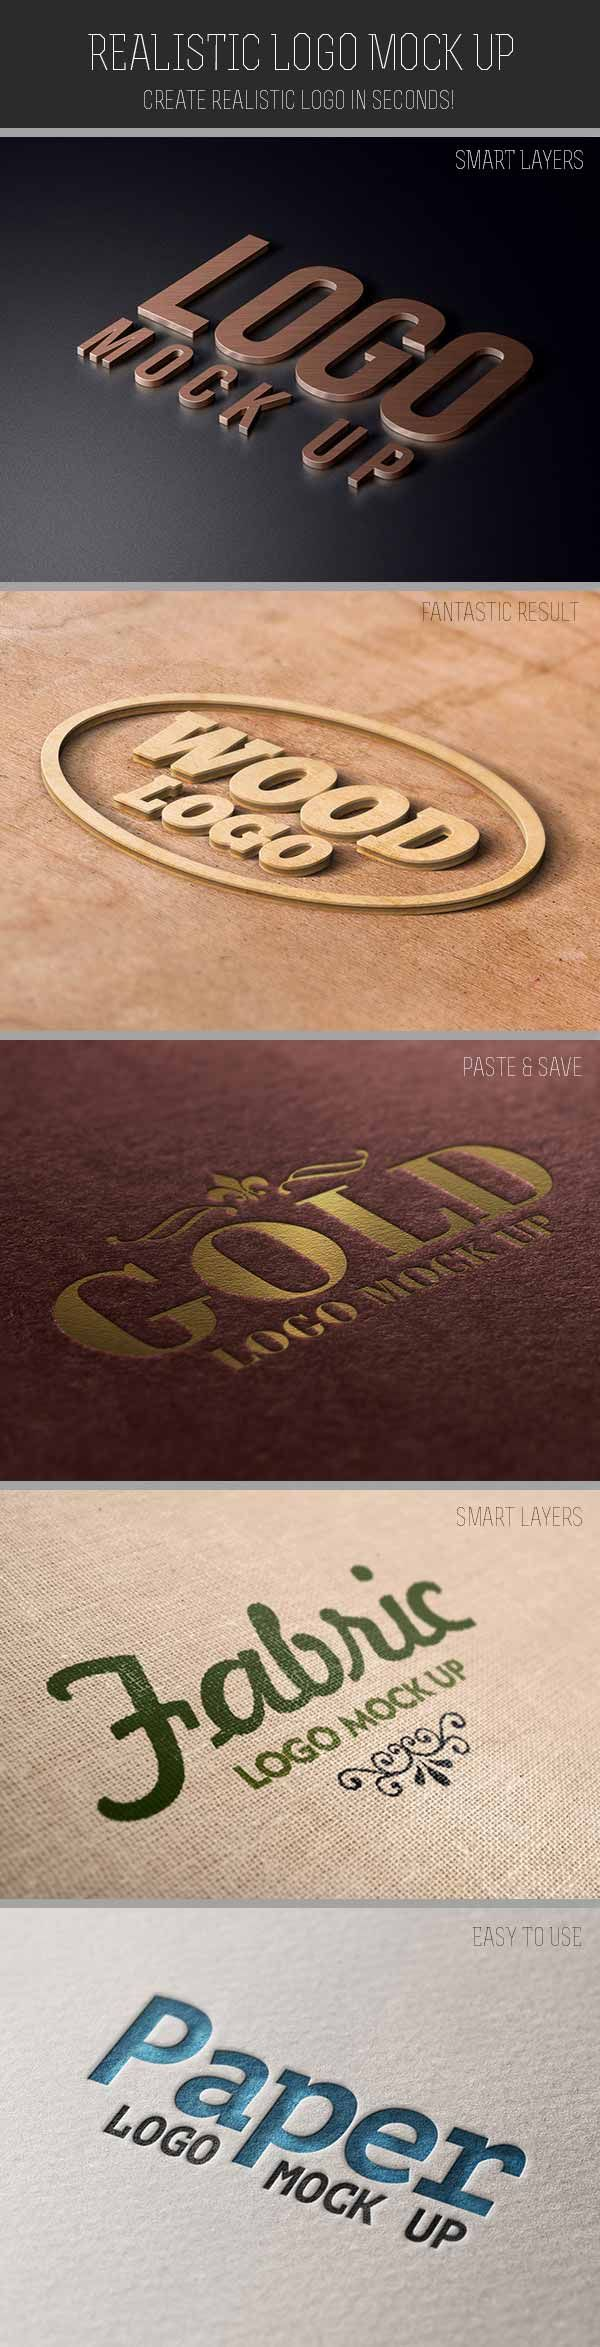 Realistic Logo Mock Up - Design Resources, Inspirations and Freebies | Designrshub Gallery